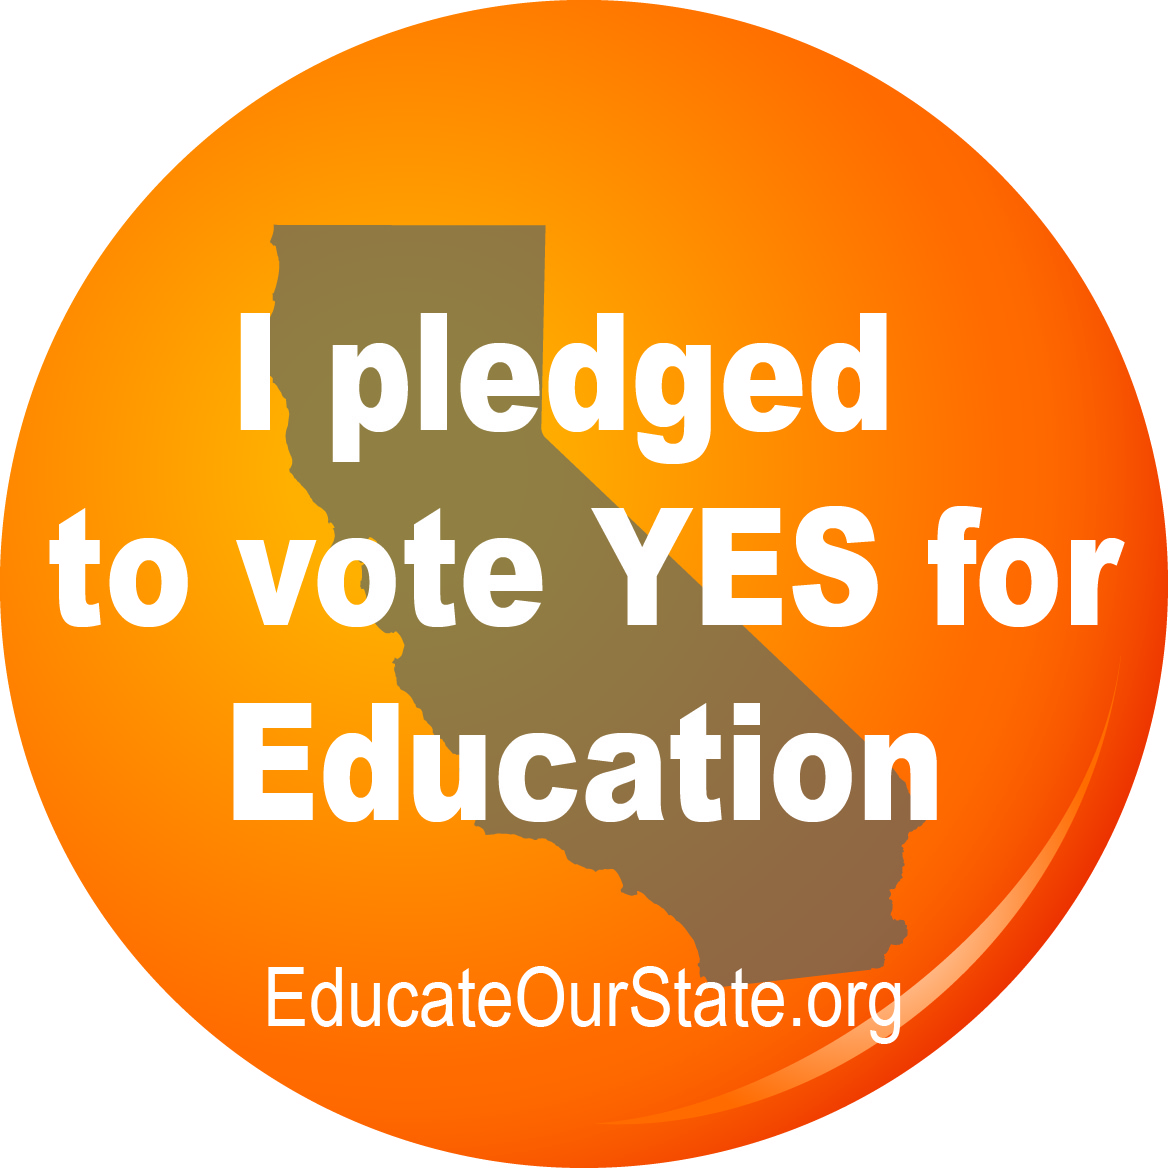 I_pledge_to_Vote_for_Education.jpg